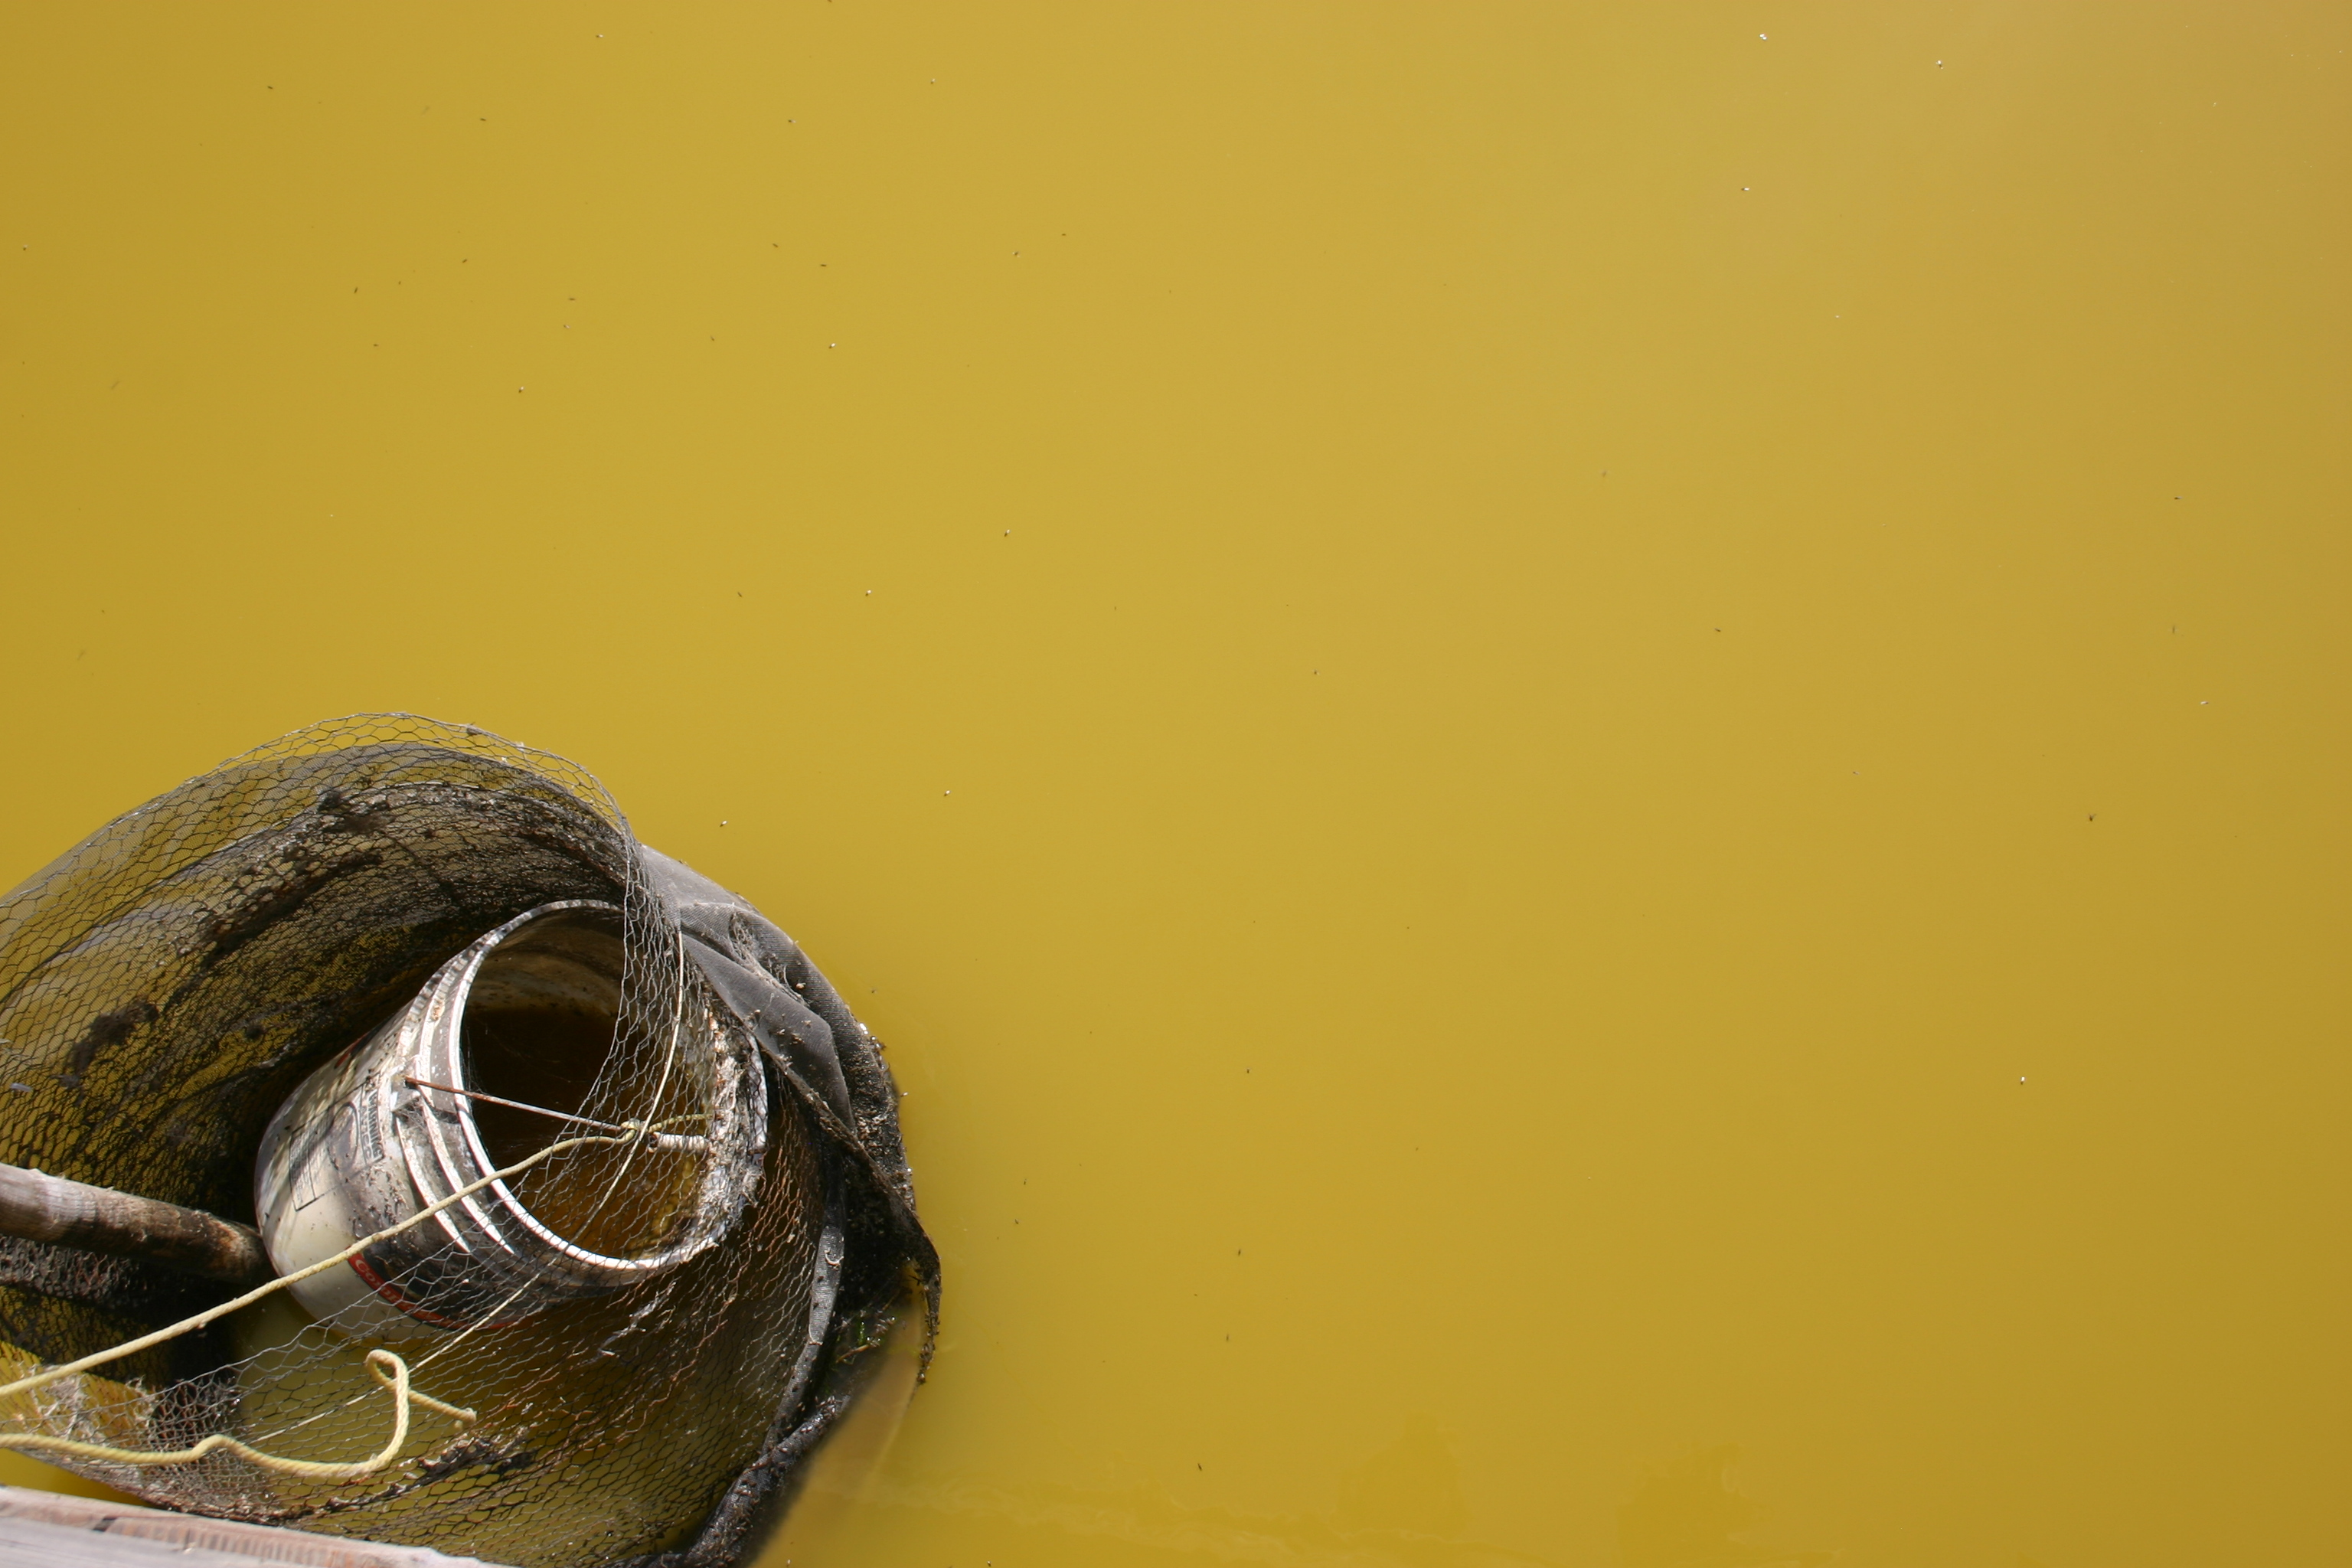 A bucket lies forgotten in stagnant green water near a bridge.